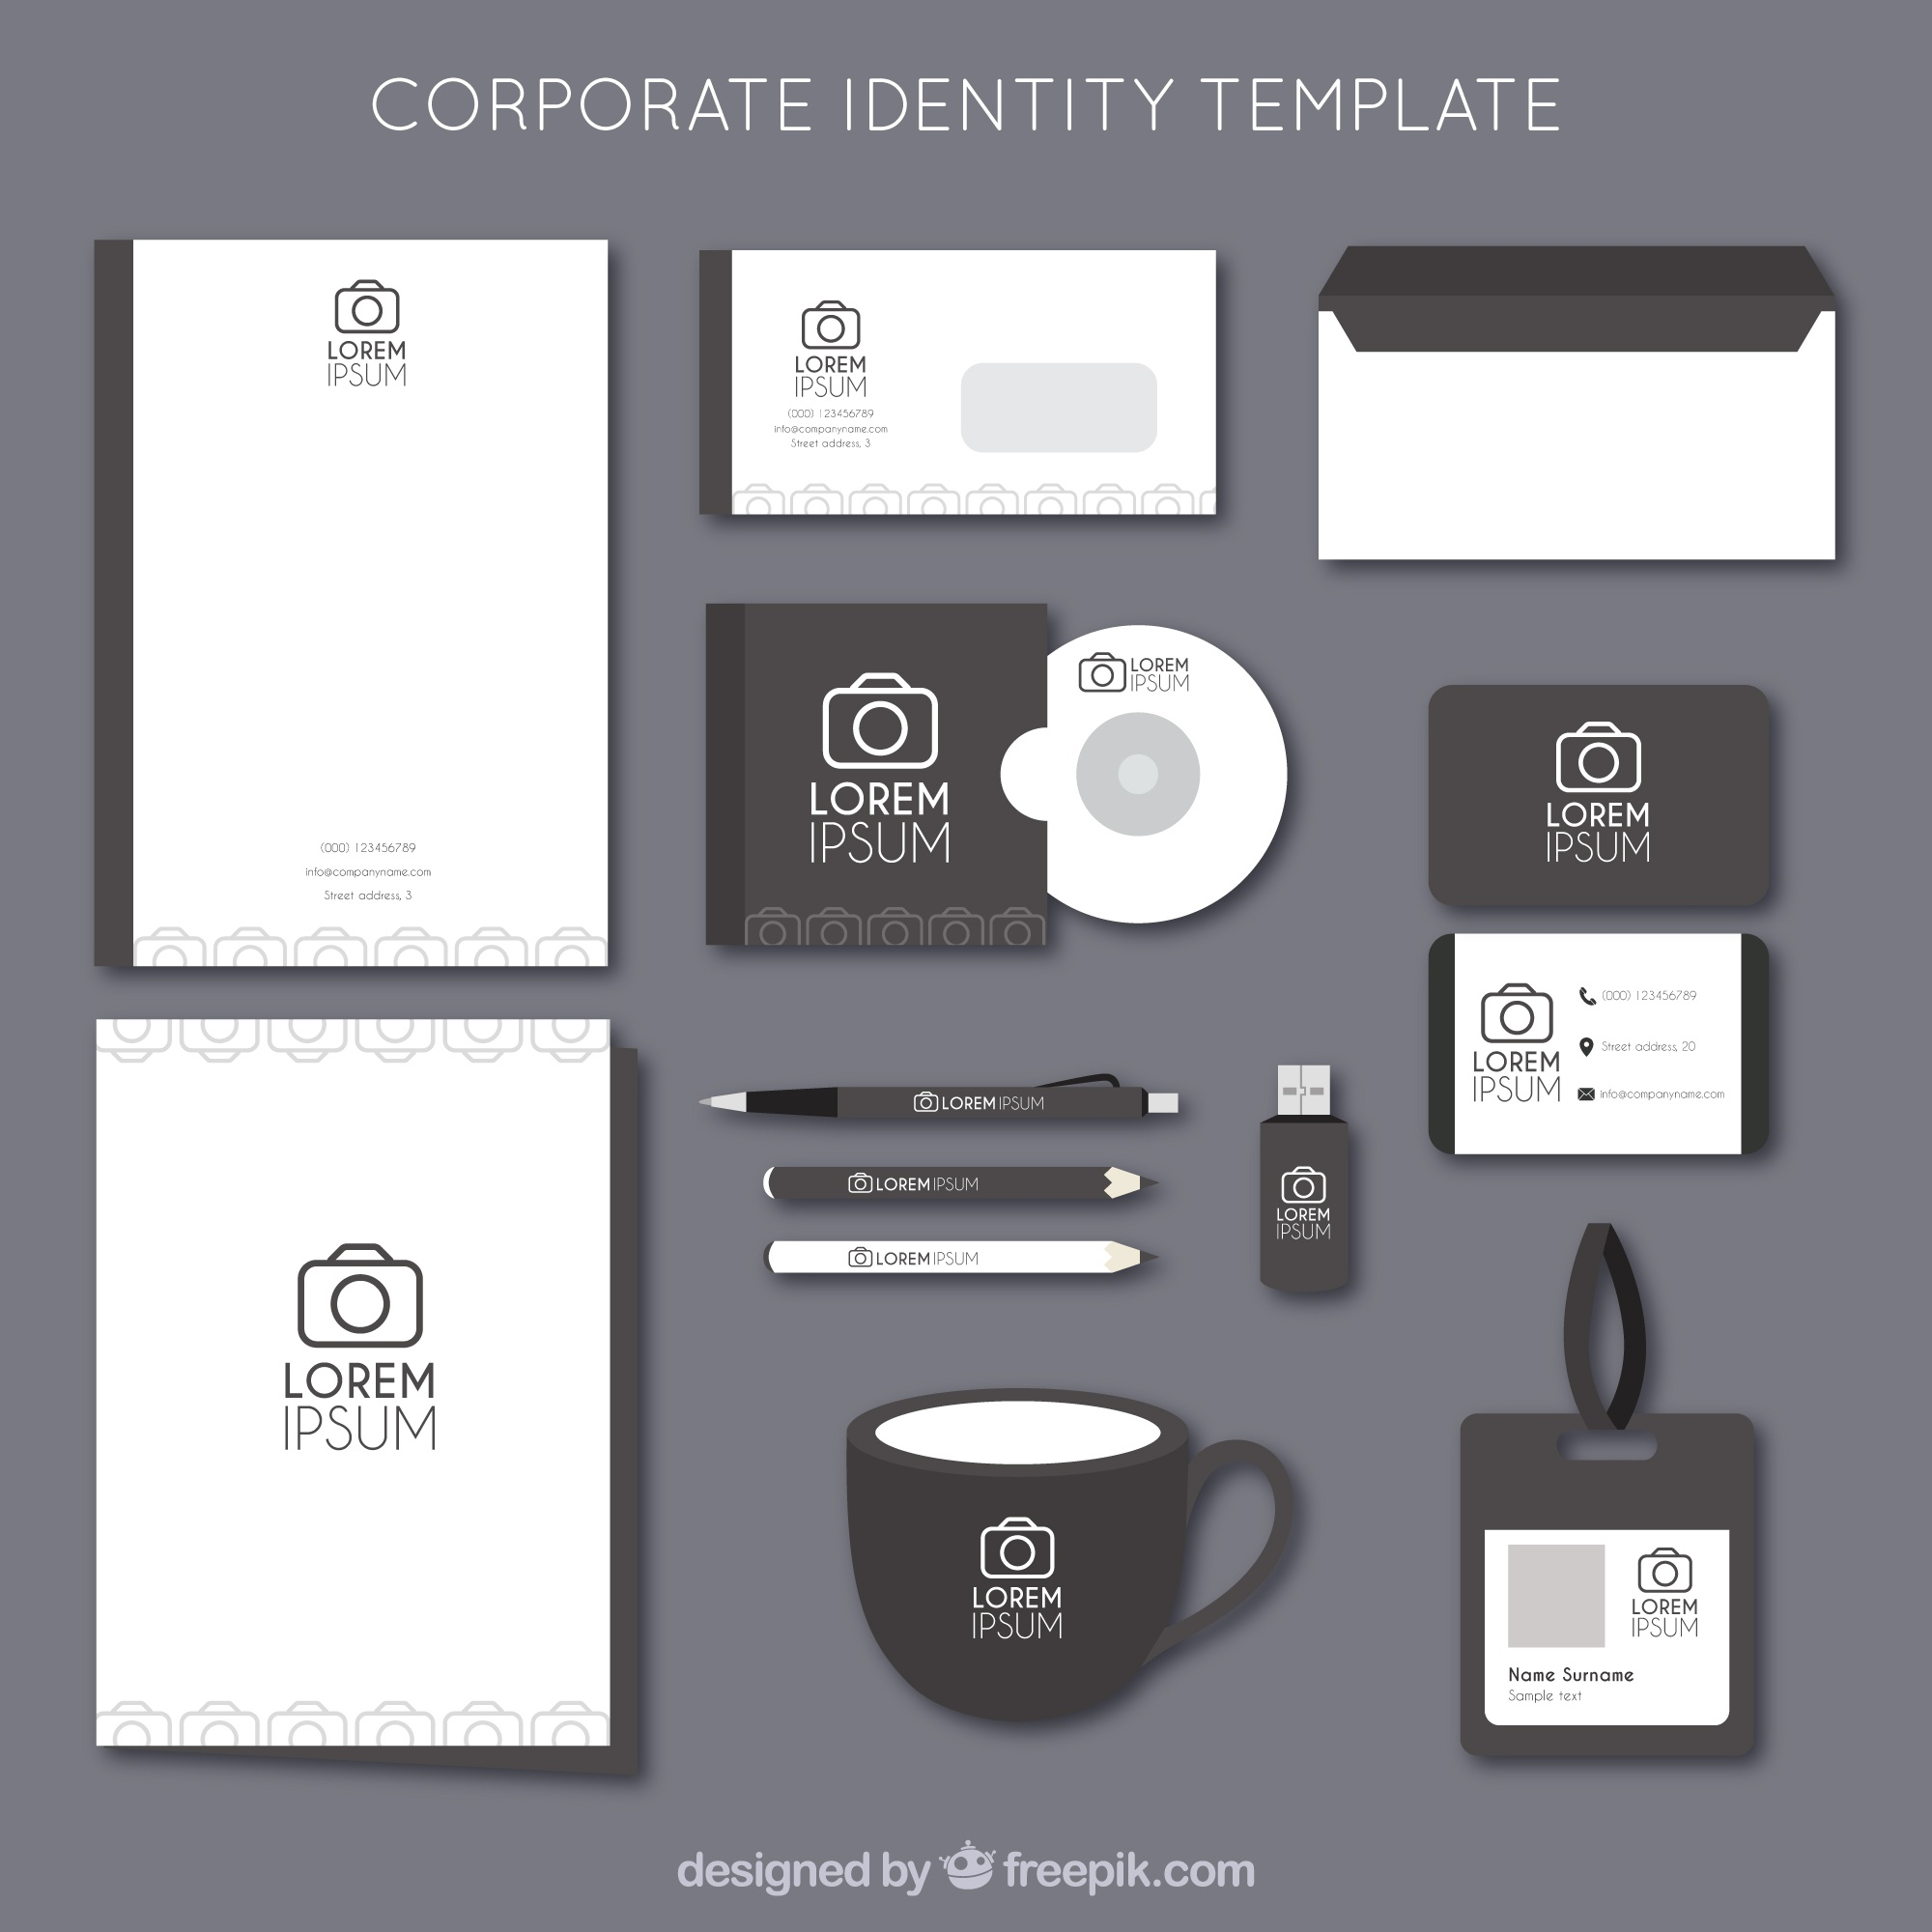 Photography camera logo corporate identity